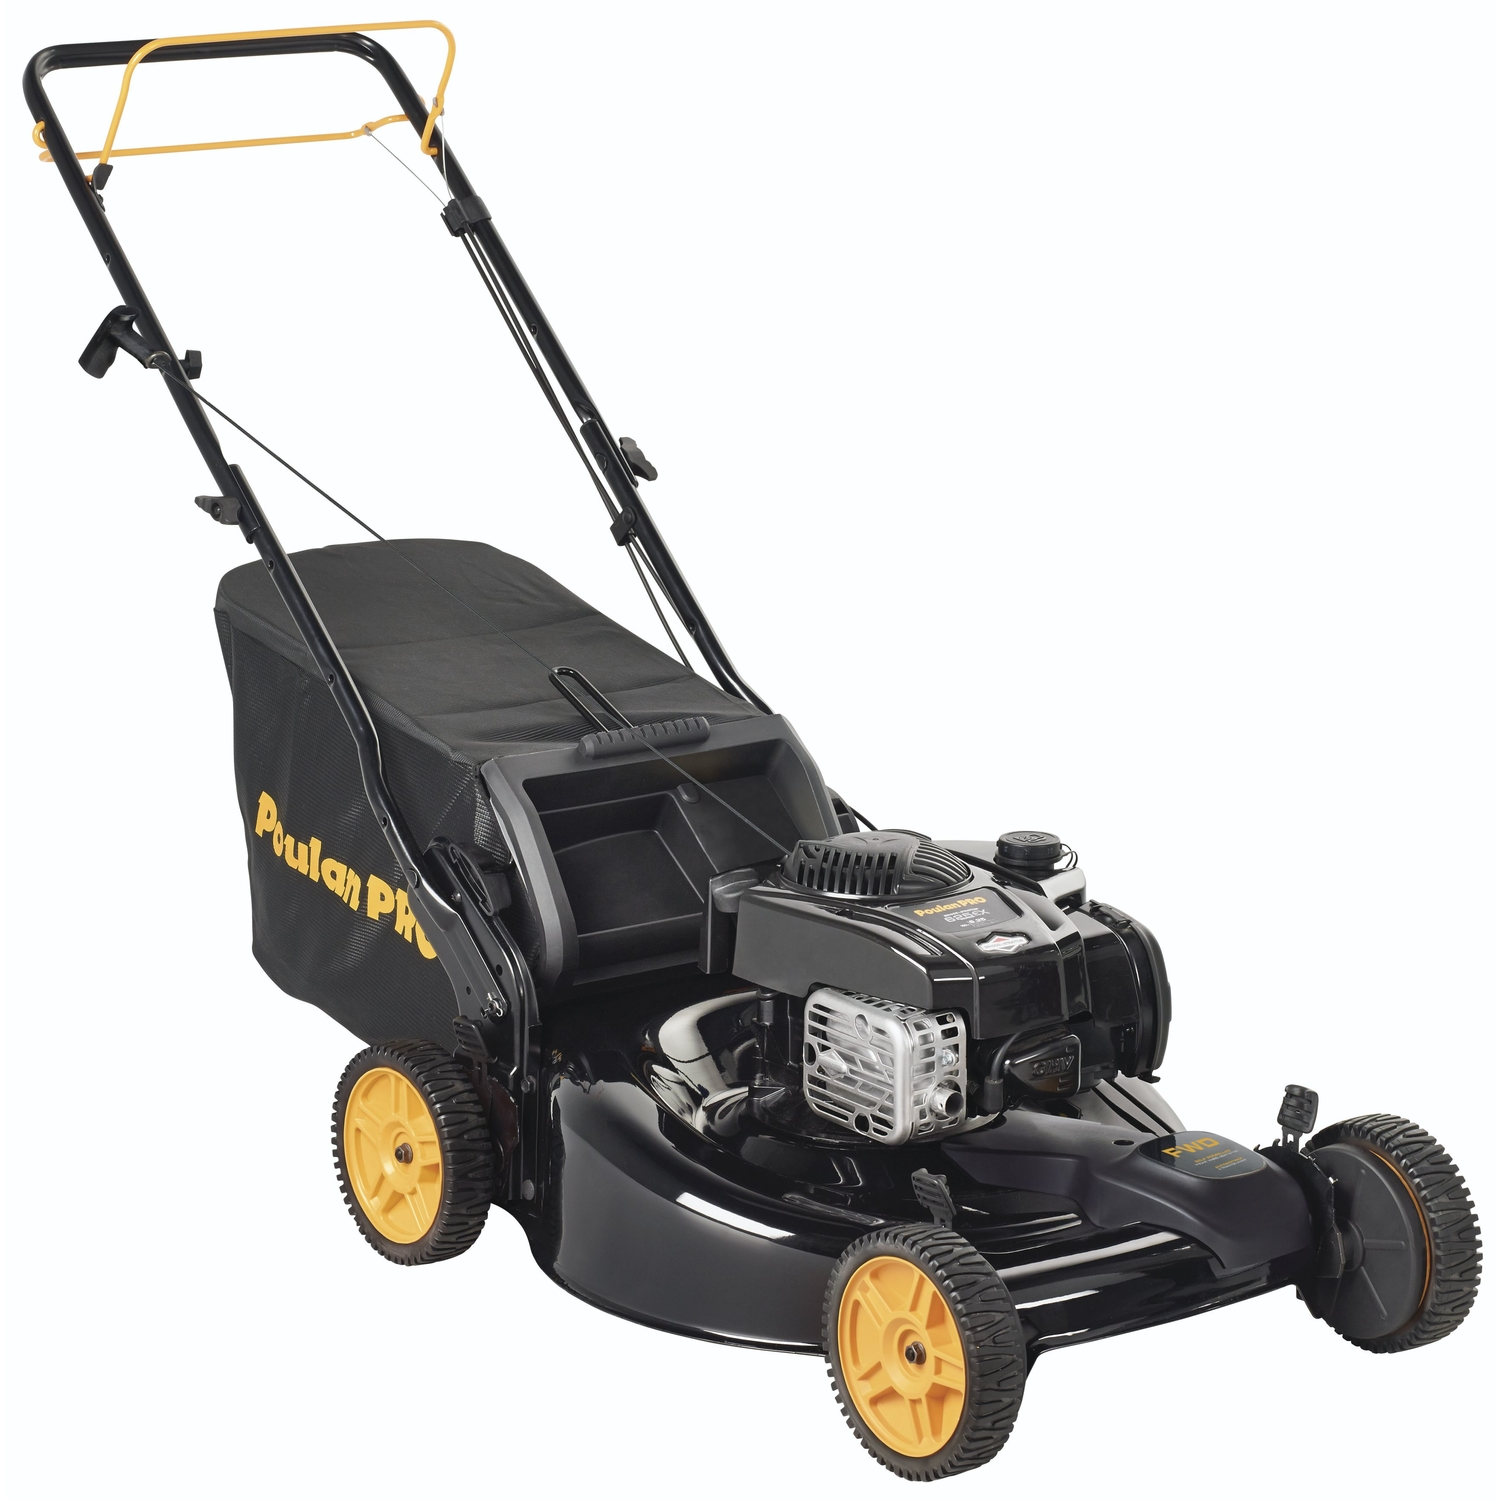 Poulan Pro  22 in. W 140 cc Self-Propelled  Mulching Capability Lawn Mower